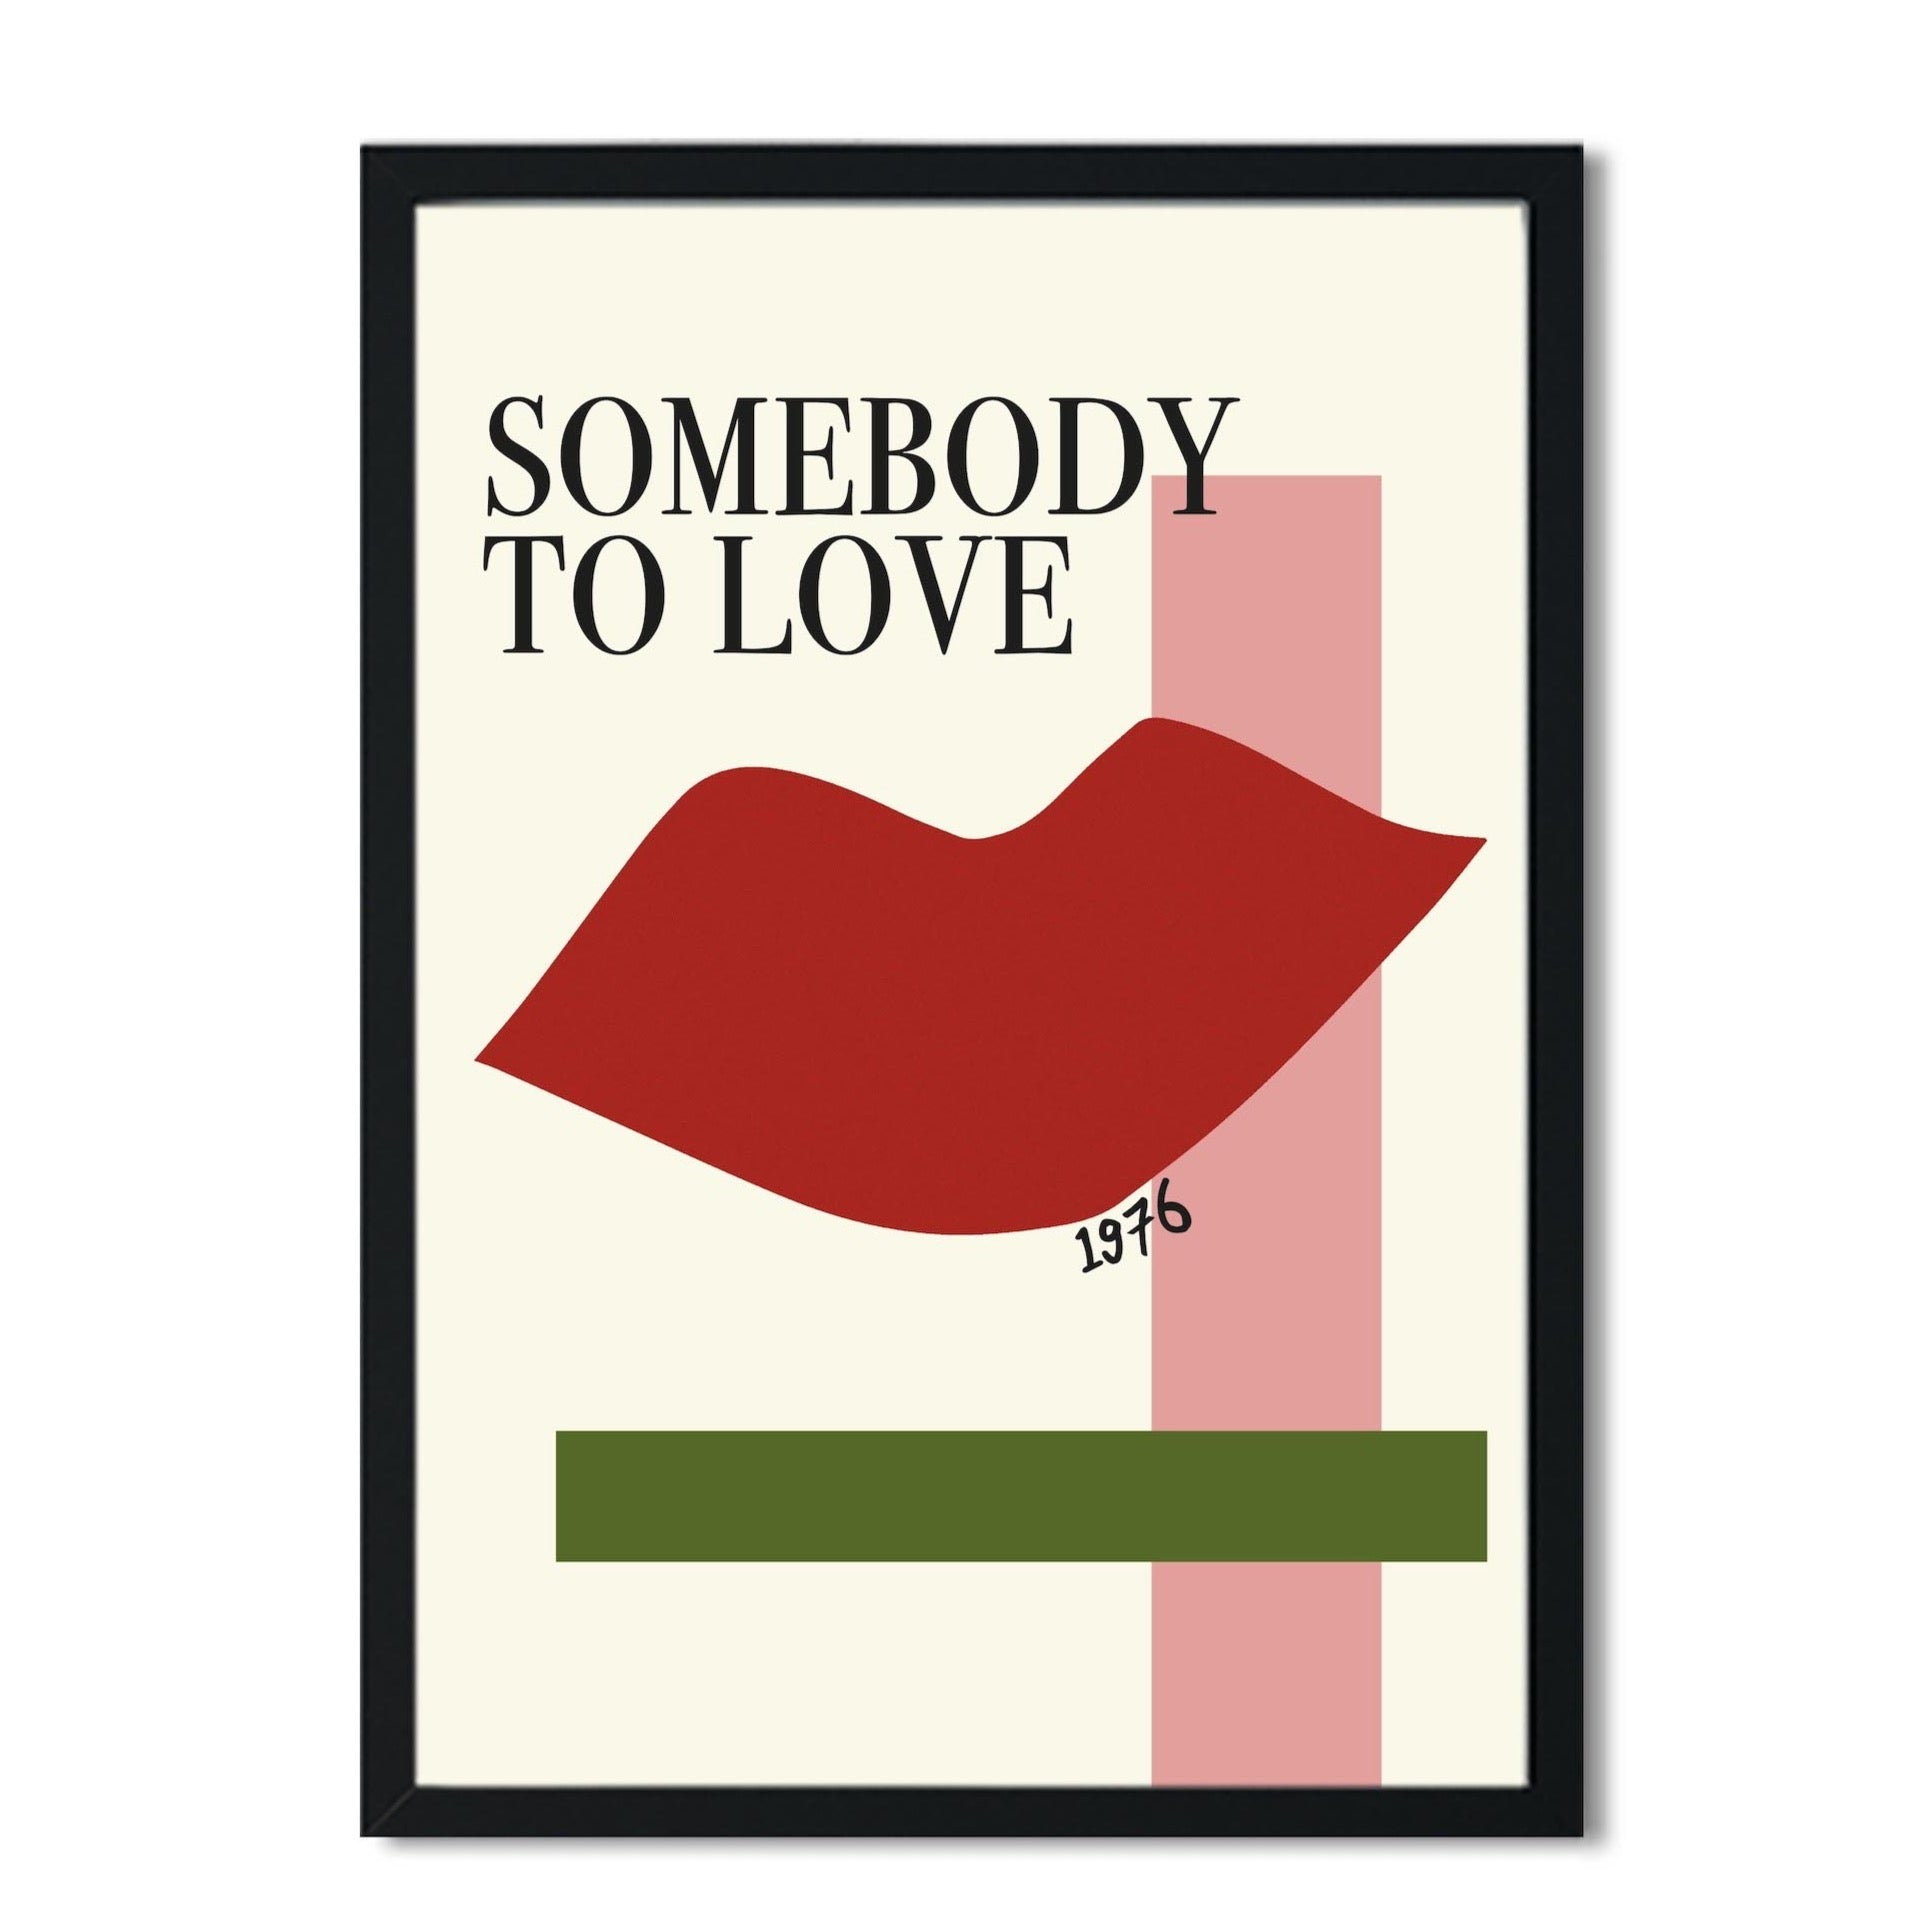 Somebody to love queen inspired retro A3 Art Print